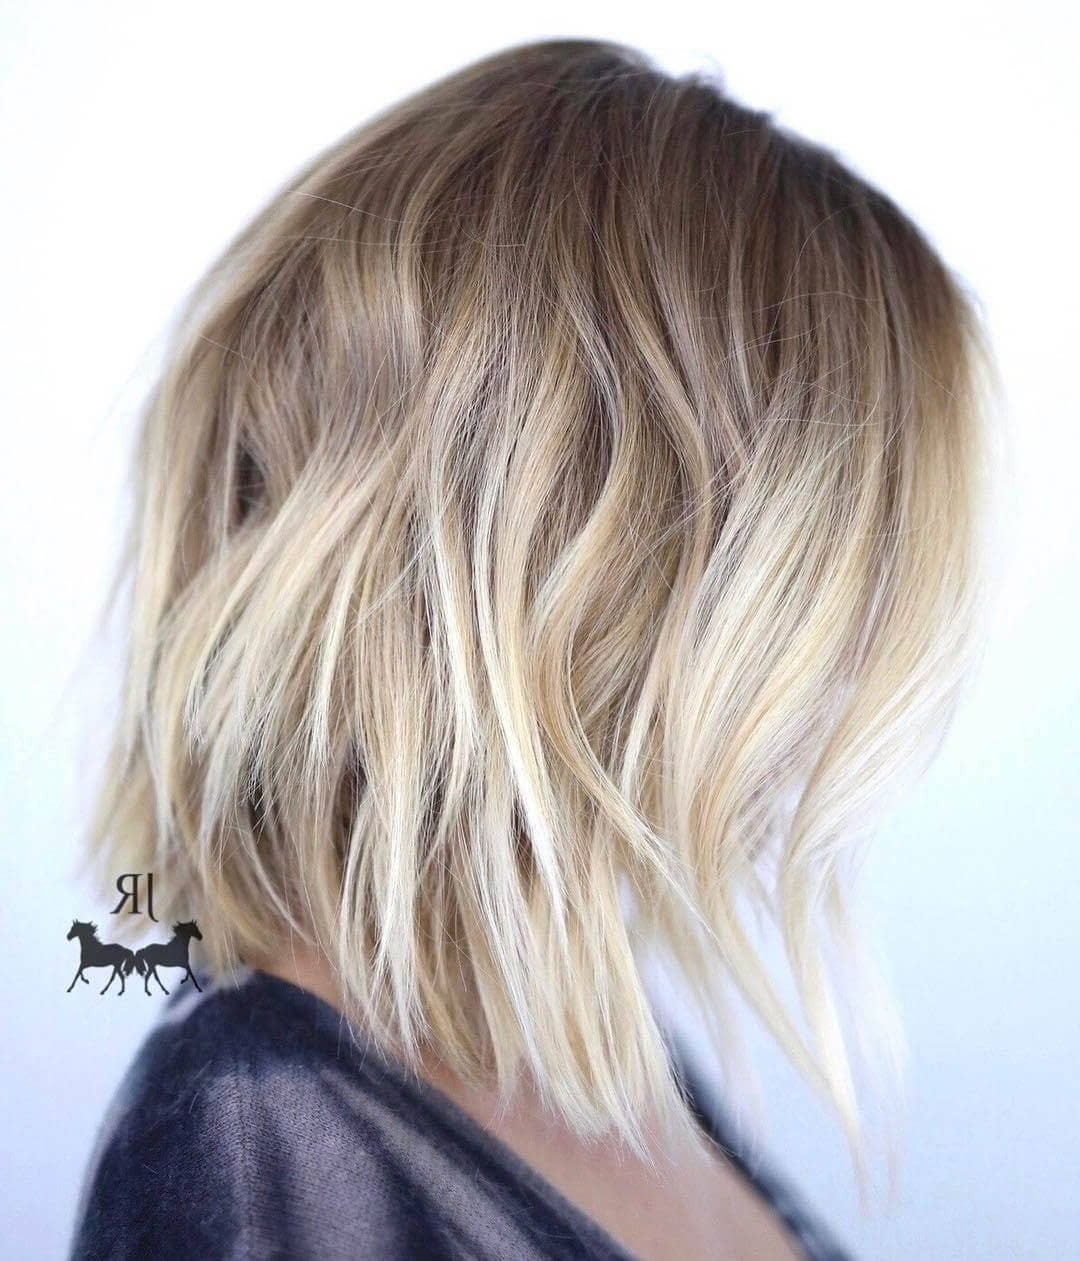 50 Fresh Short Blonde Hair Ideas To Update Your Style In 2018 Regarding Messy Honey Blonde Bob Haircuts (View 11 of 20)